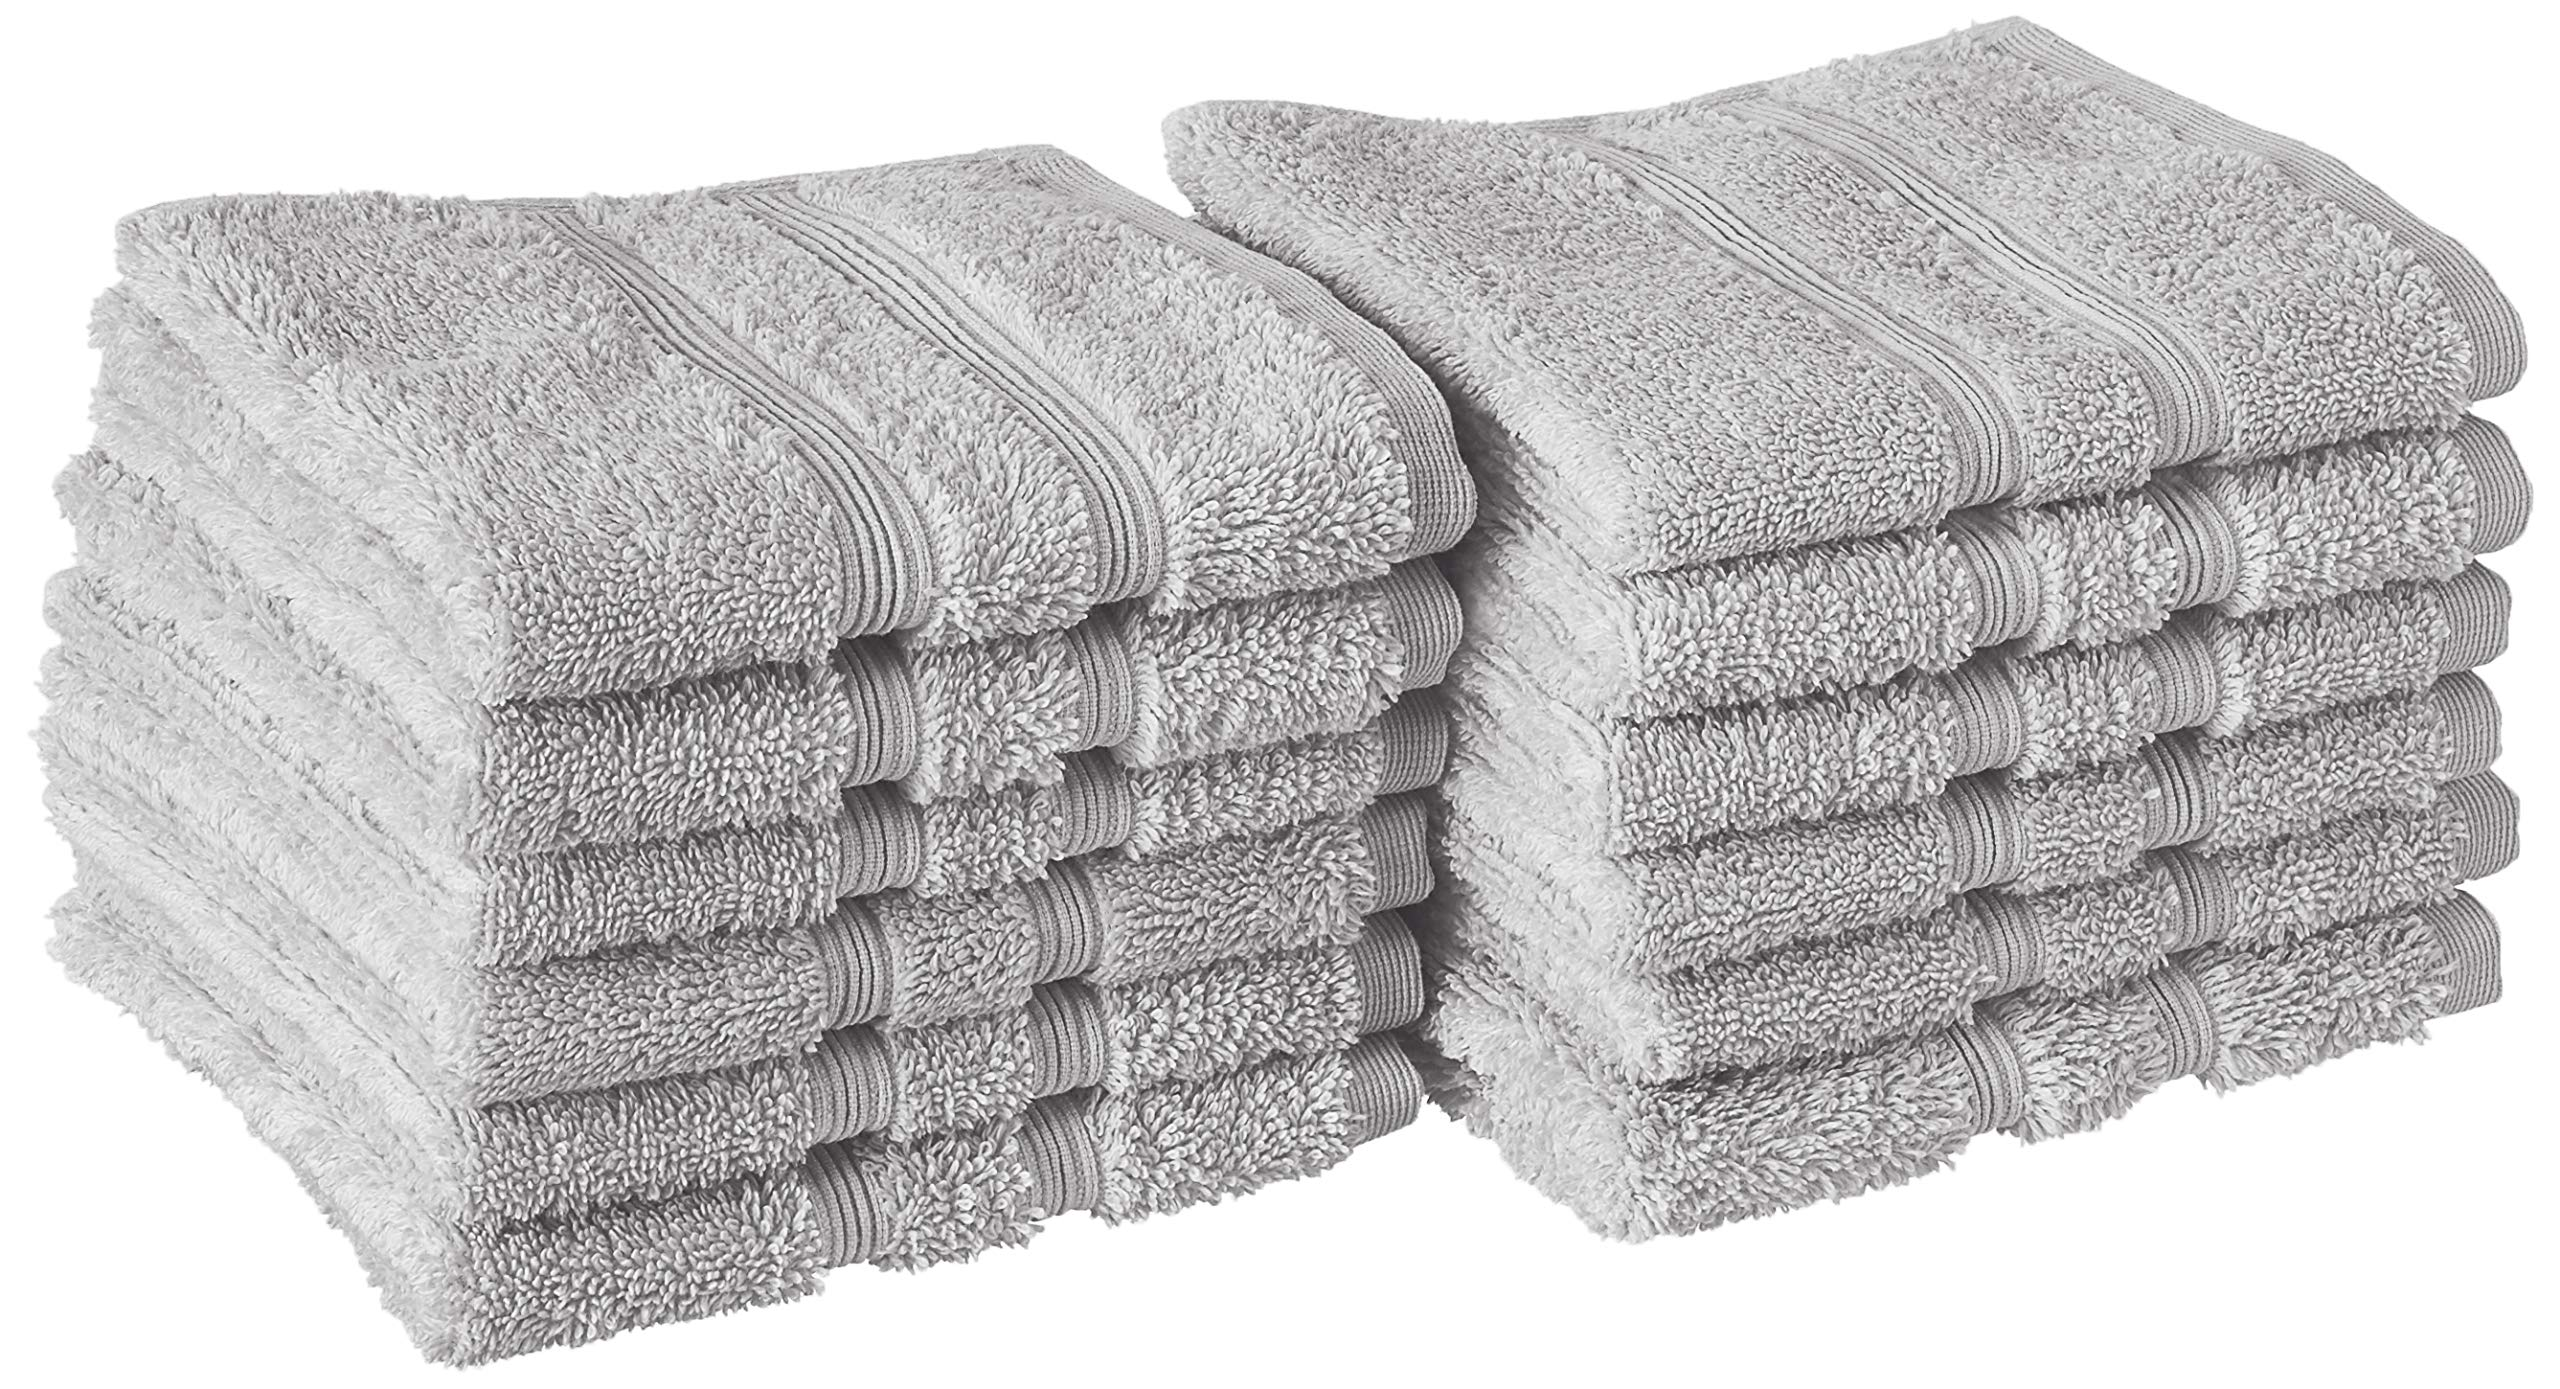 Manor Ridge Turkish Cotton 700 GSM Wash Cloth Set, Super Soft, Heavy Weight & Absorbent, 12-Pack, Grey 12 Count